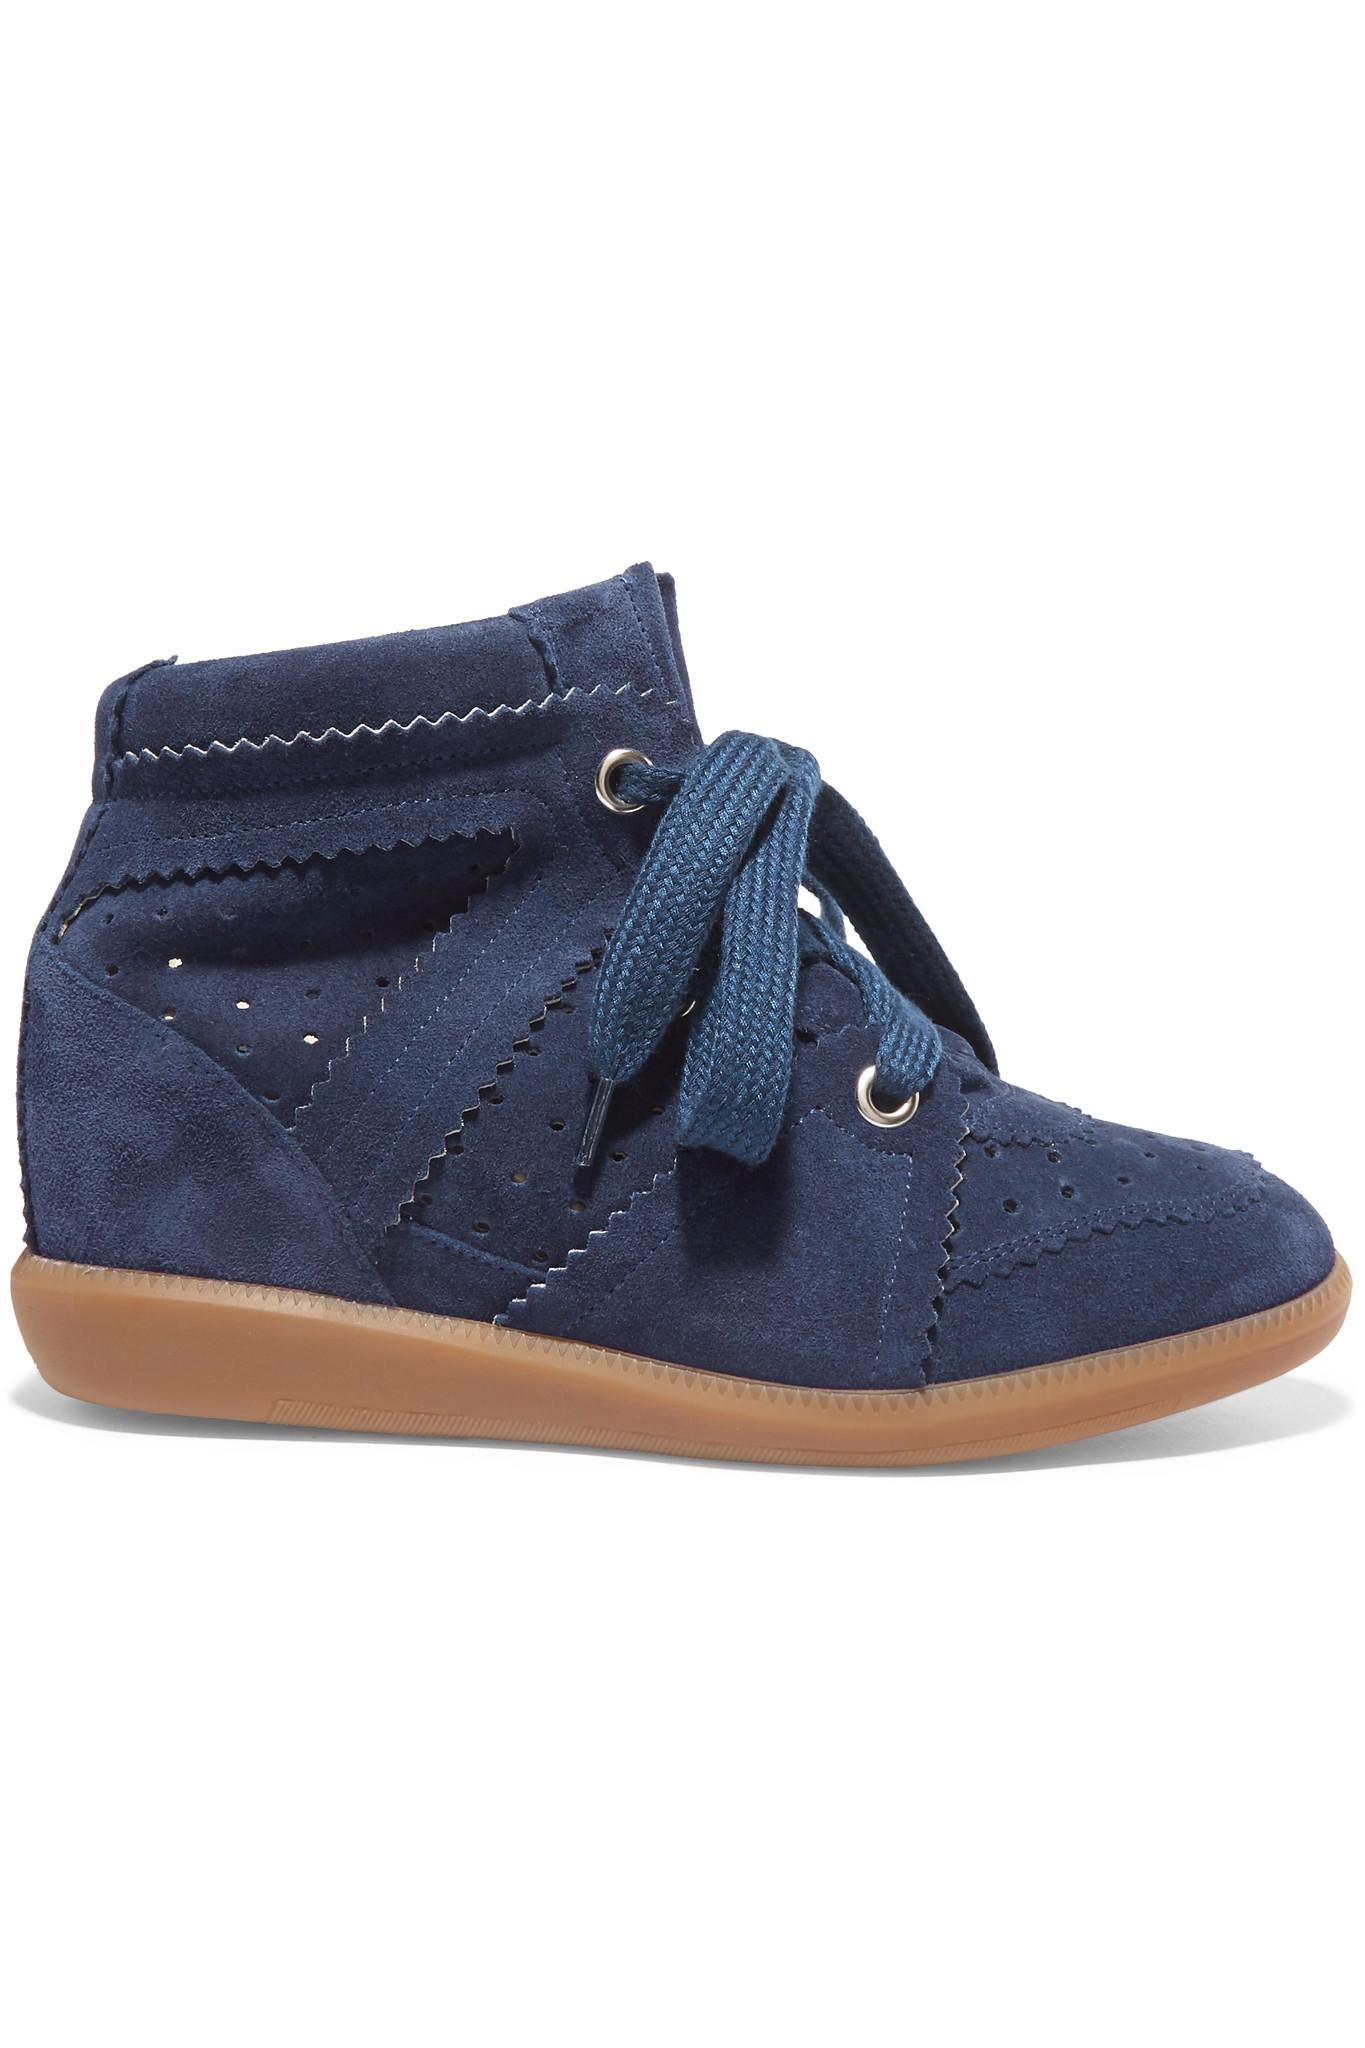 isabel marant toile bobby suede wedge sneakers in blue. Black Bedroom Furniture Sets. Home Design Ideas